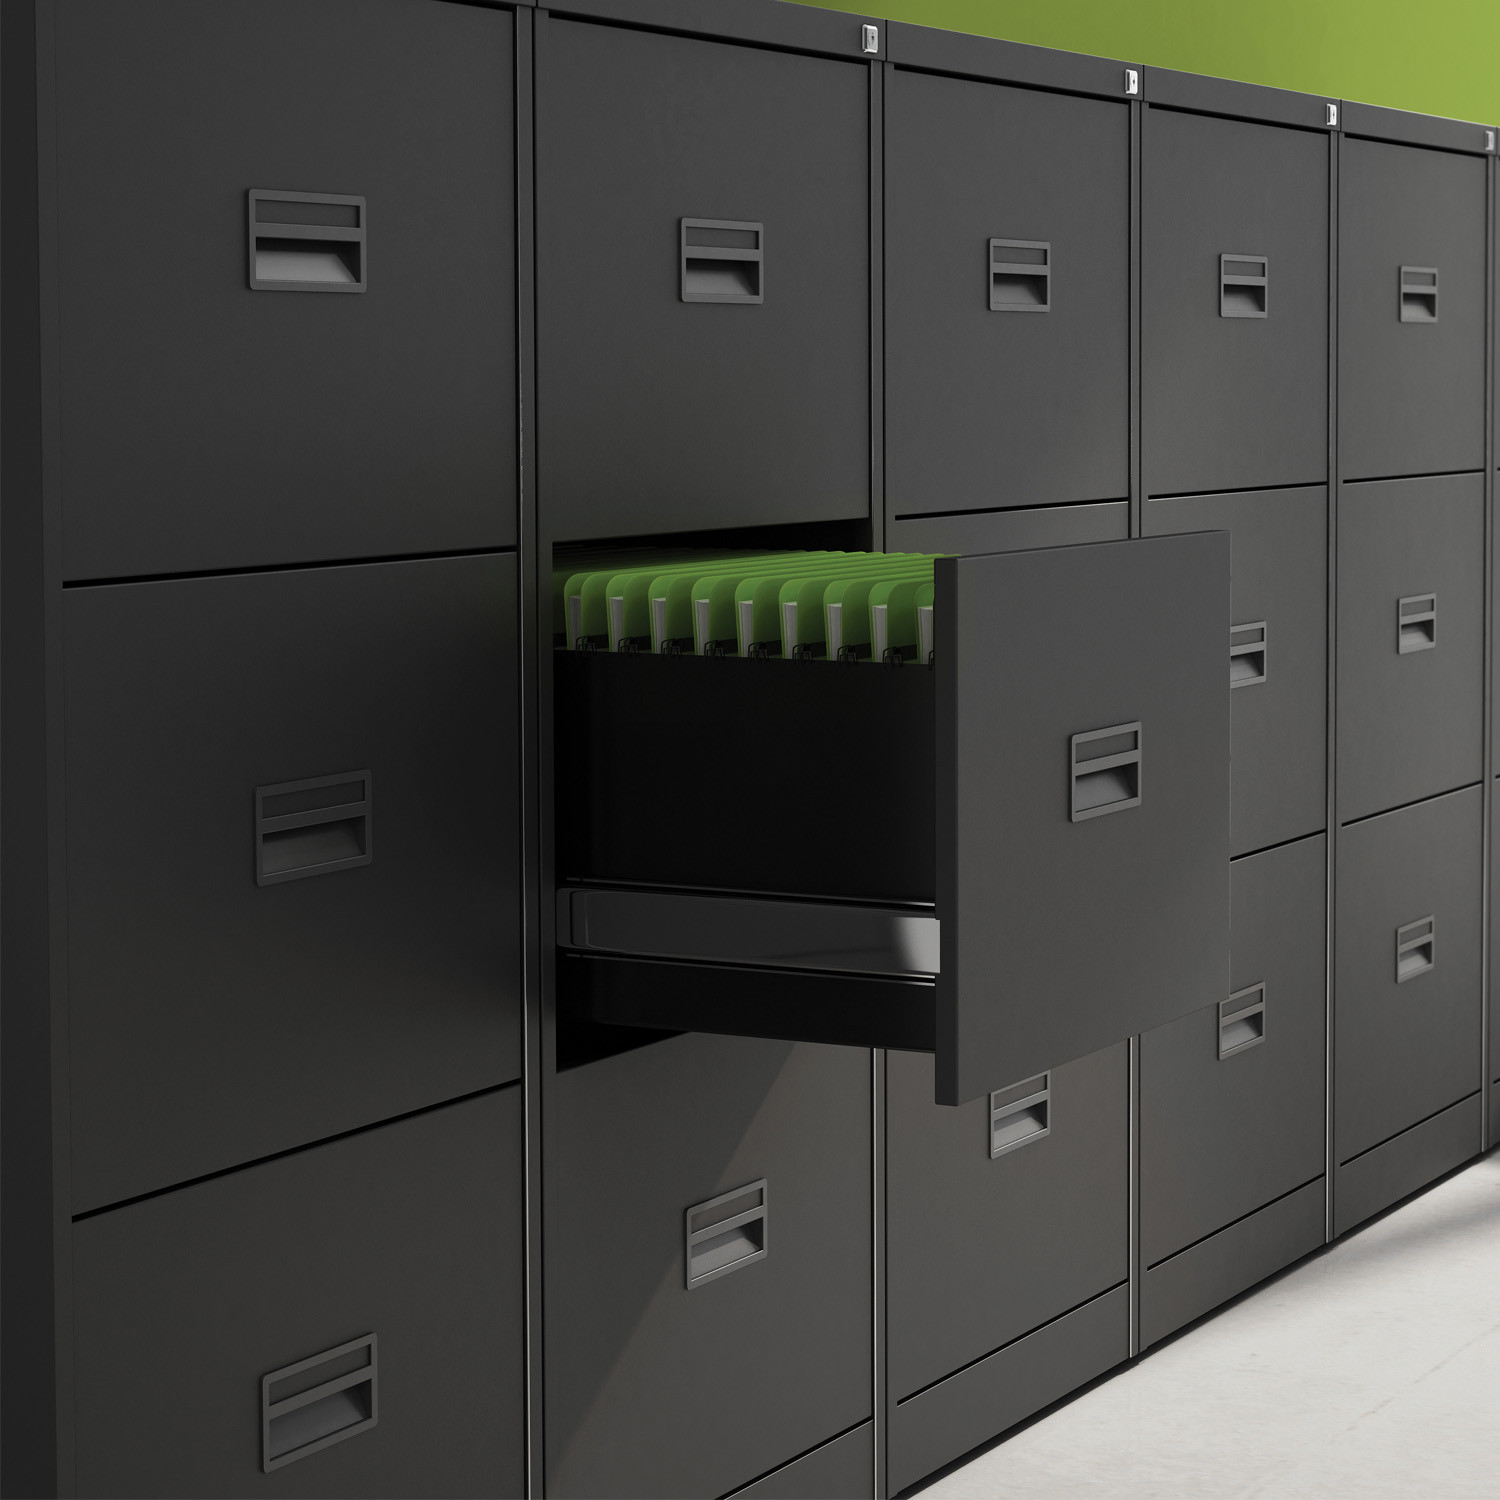 A3 Jumbo & 5 Drawer Filing Cabinets